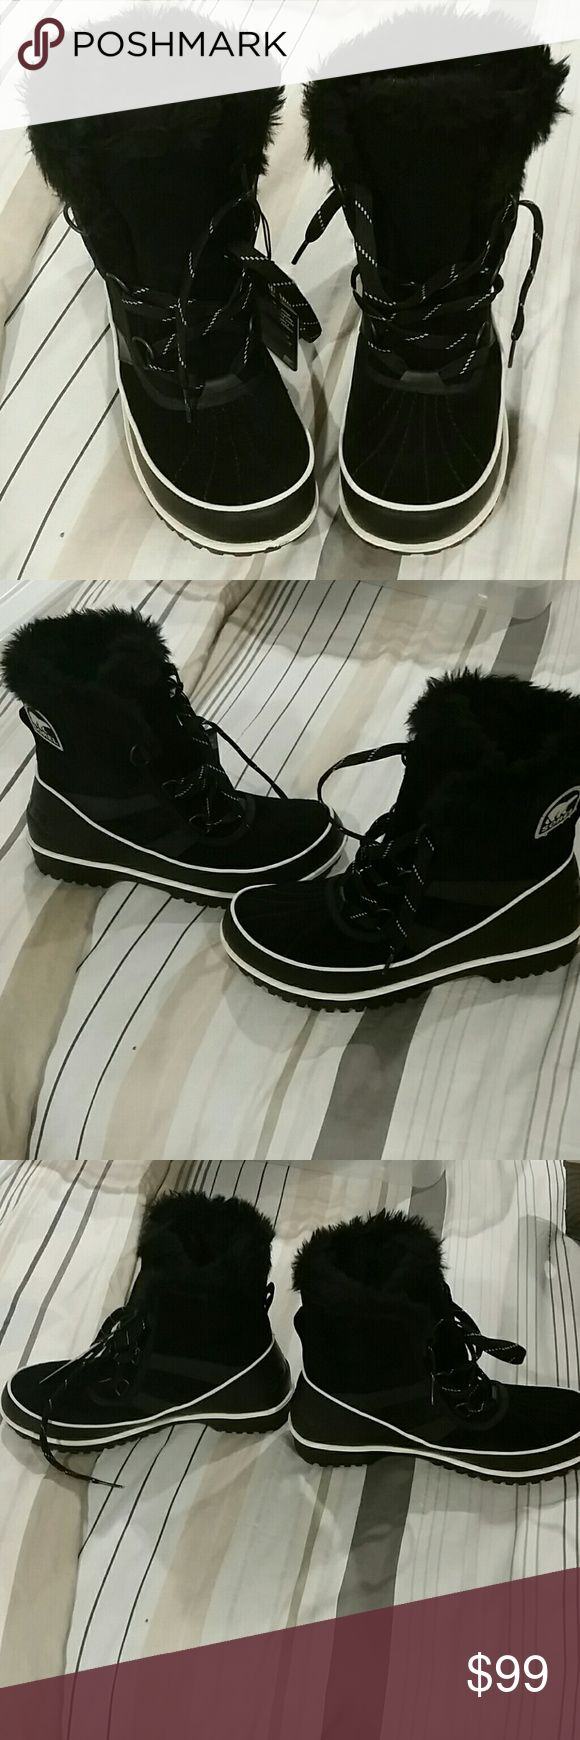 NWT 8.5 sorel black boots Never worn NWT 8.5 women's sorel boots Sorel Shoes Winter & Rain Boots